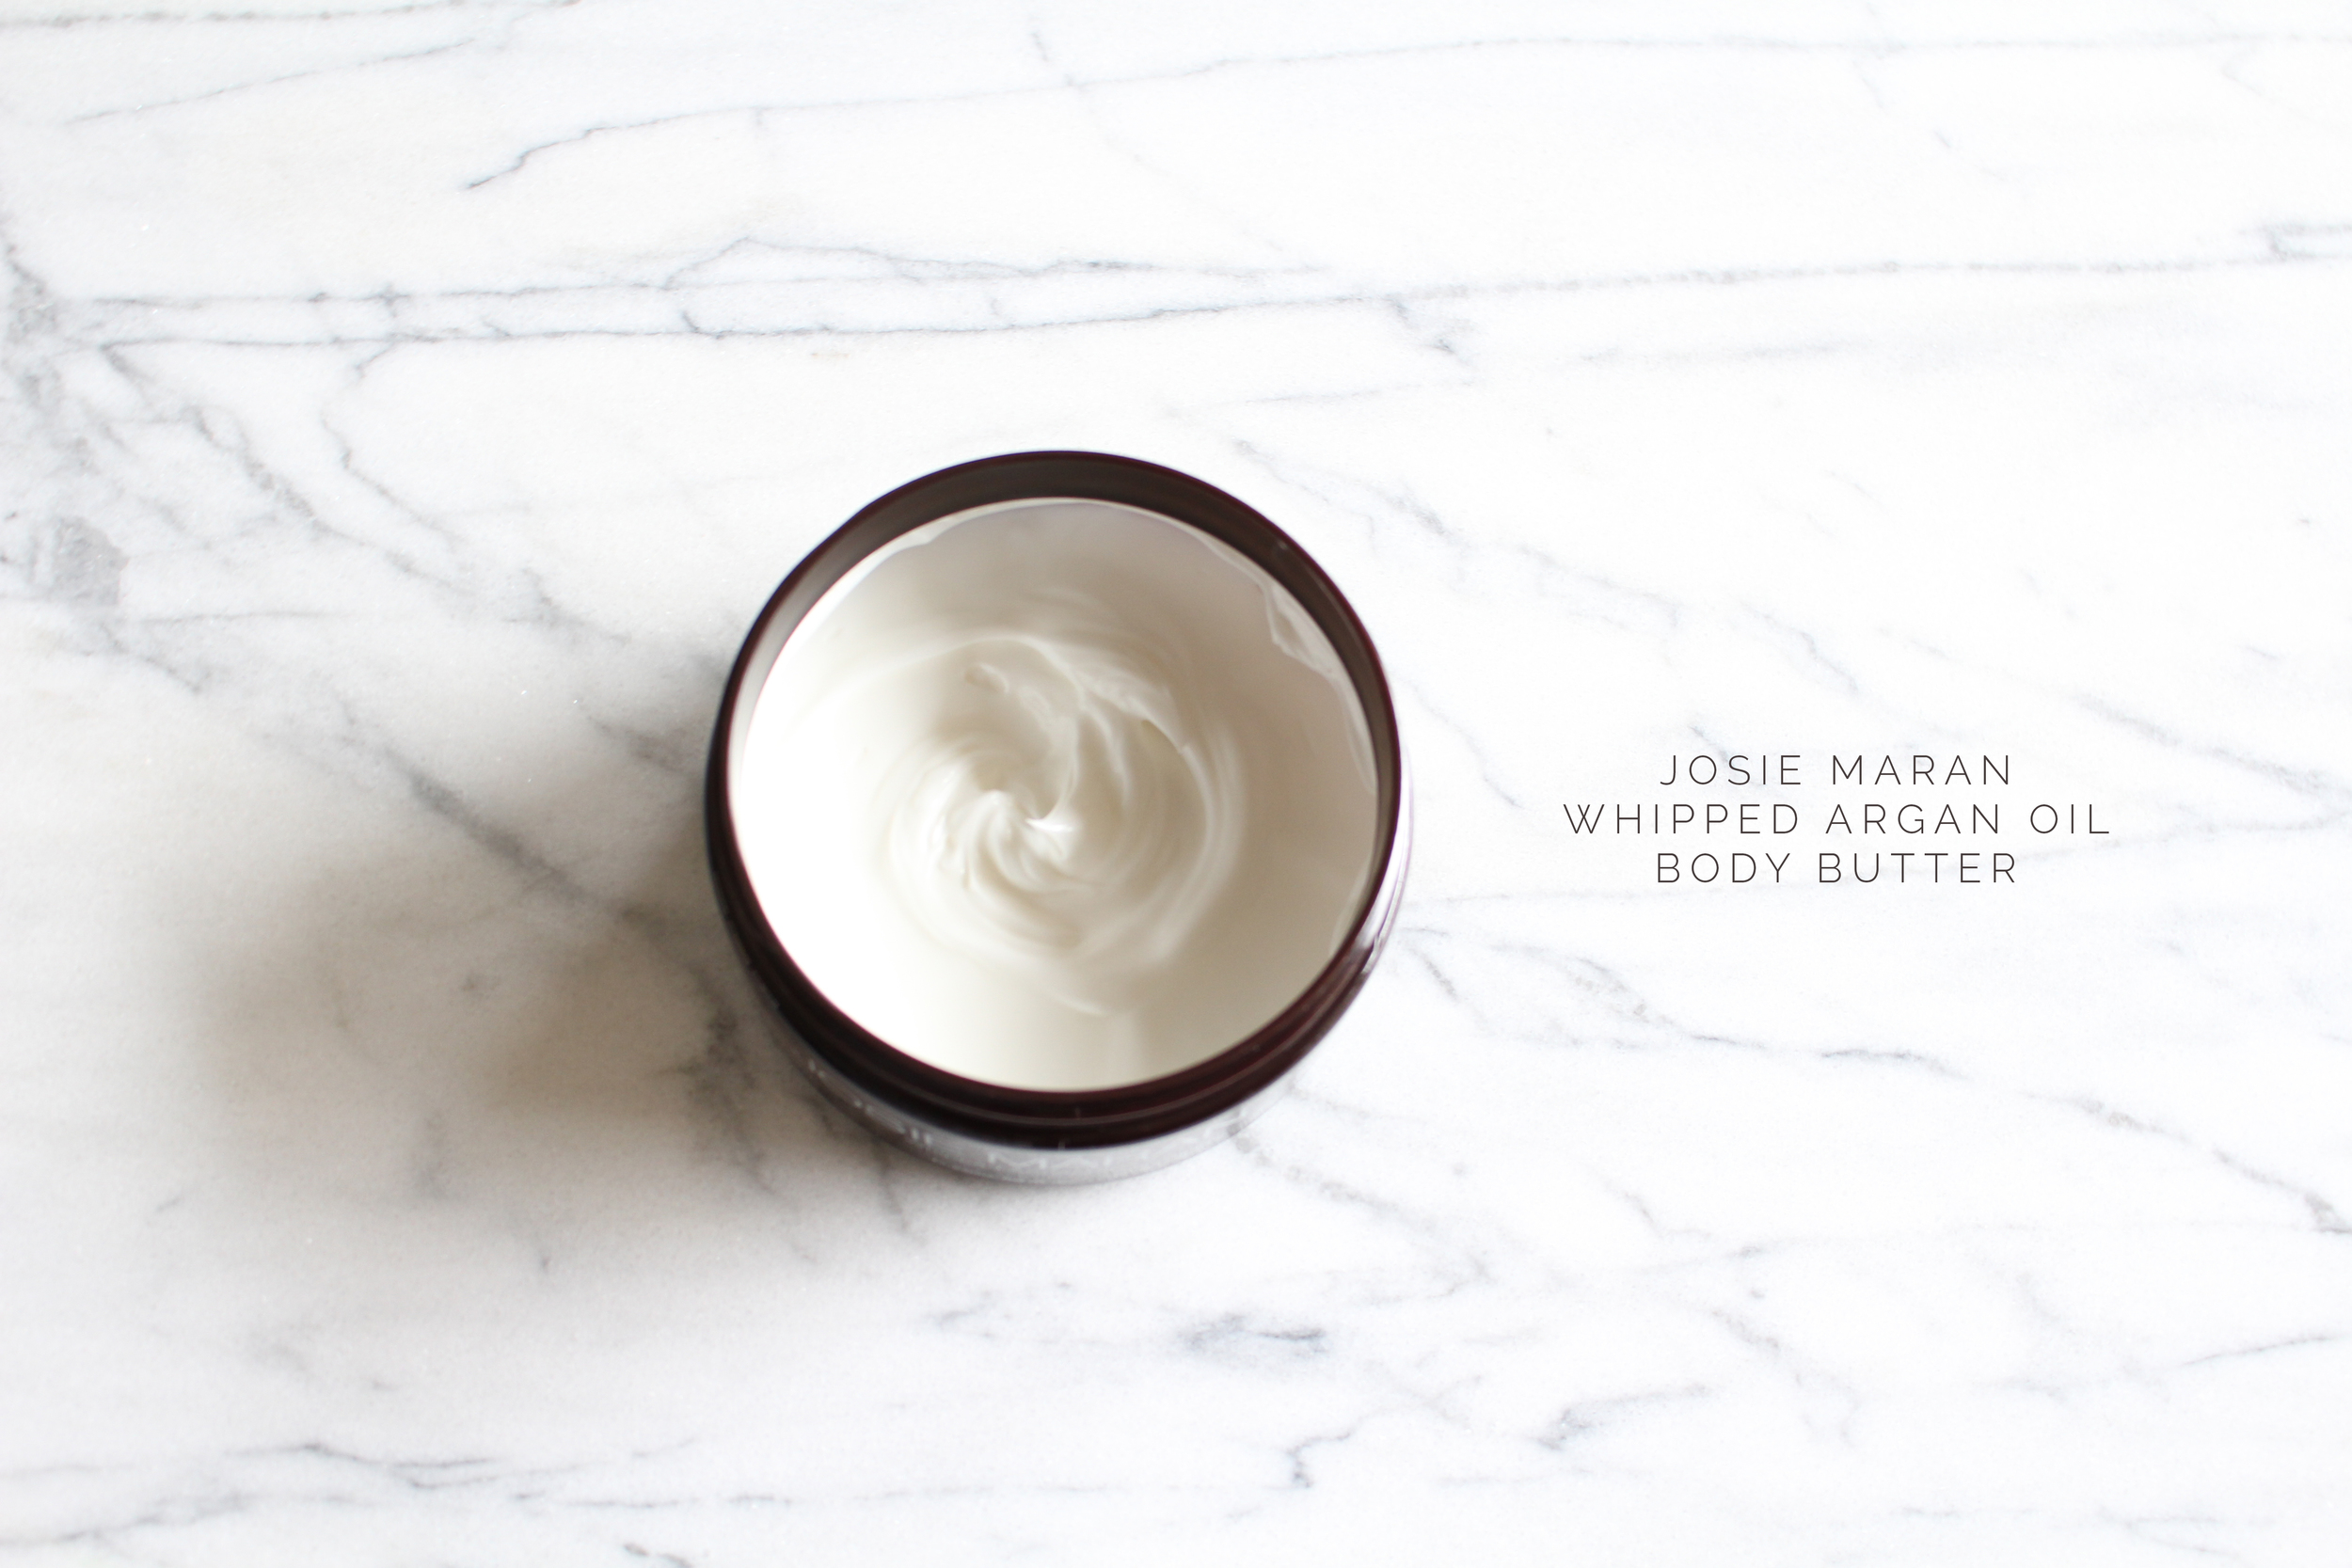 josie maran whipped argan oil review. click to find out how it keeps skin moisturized for a full 24 hours!